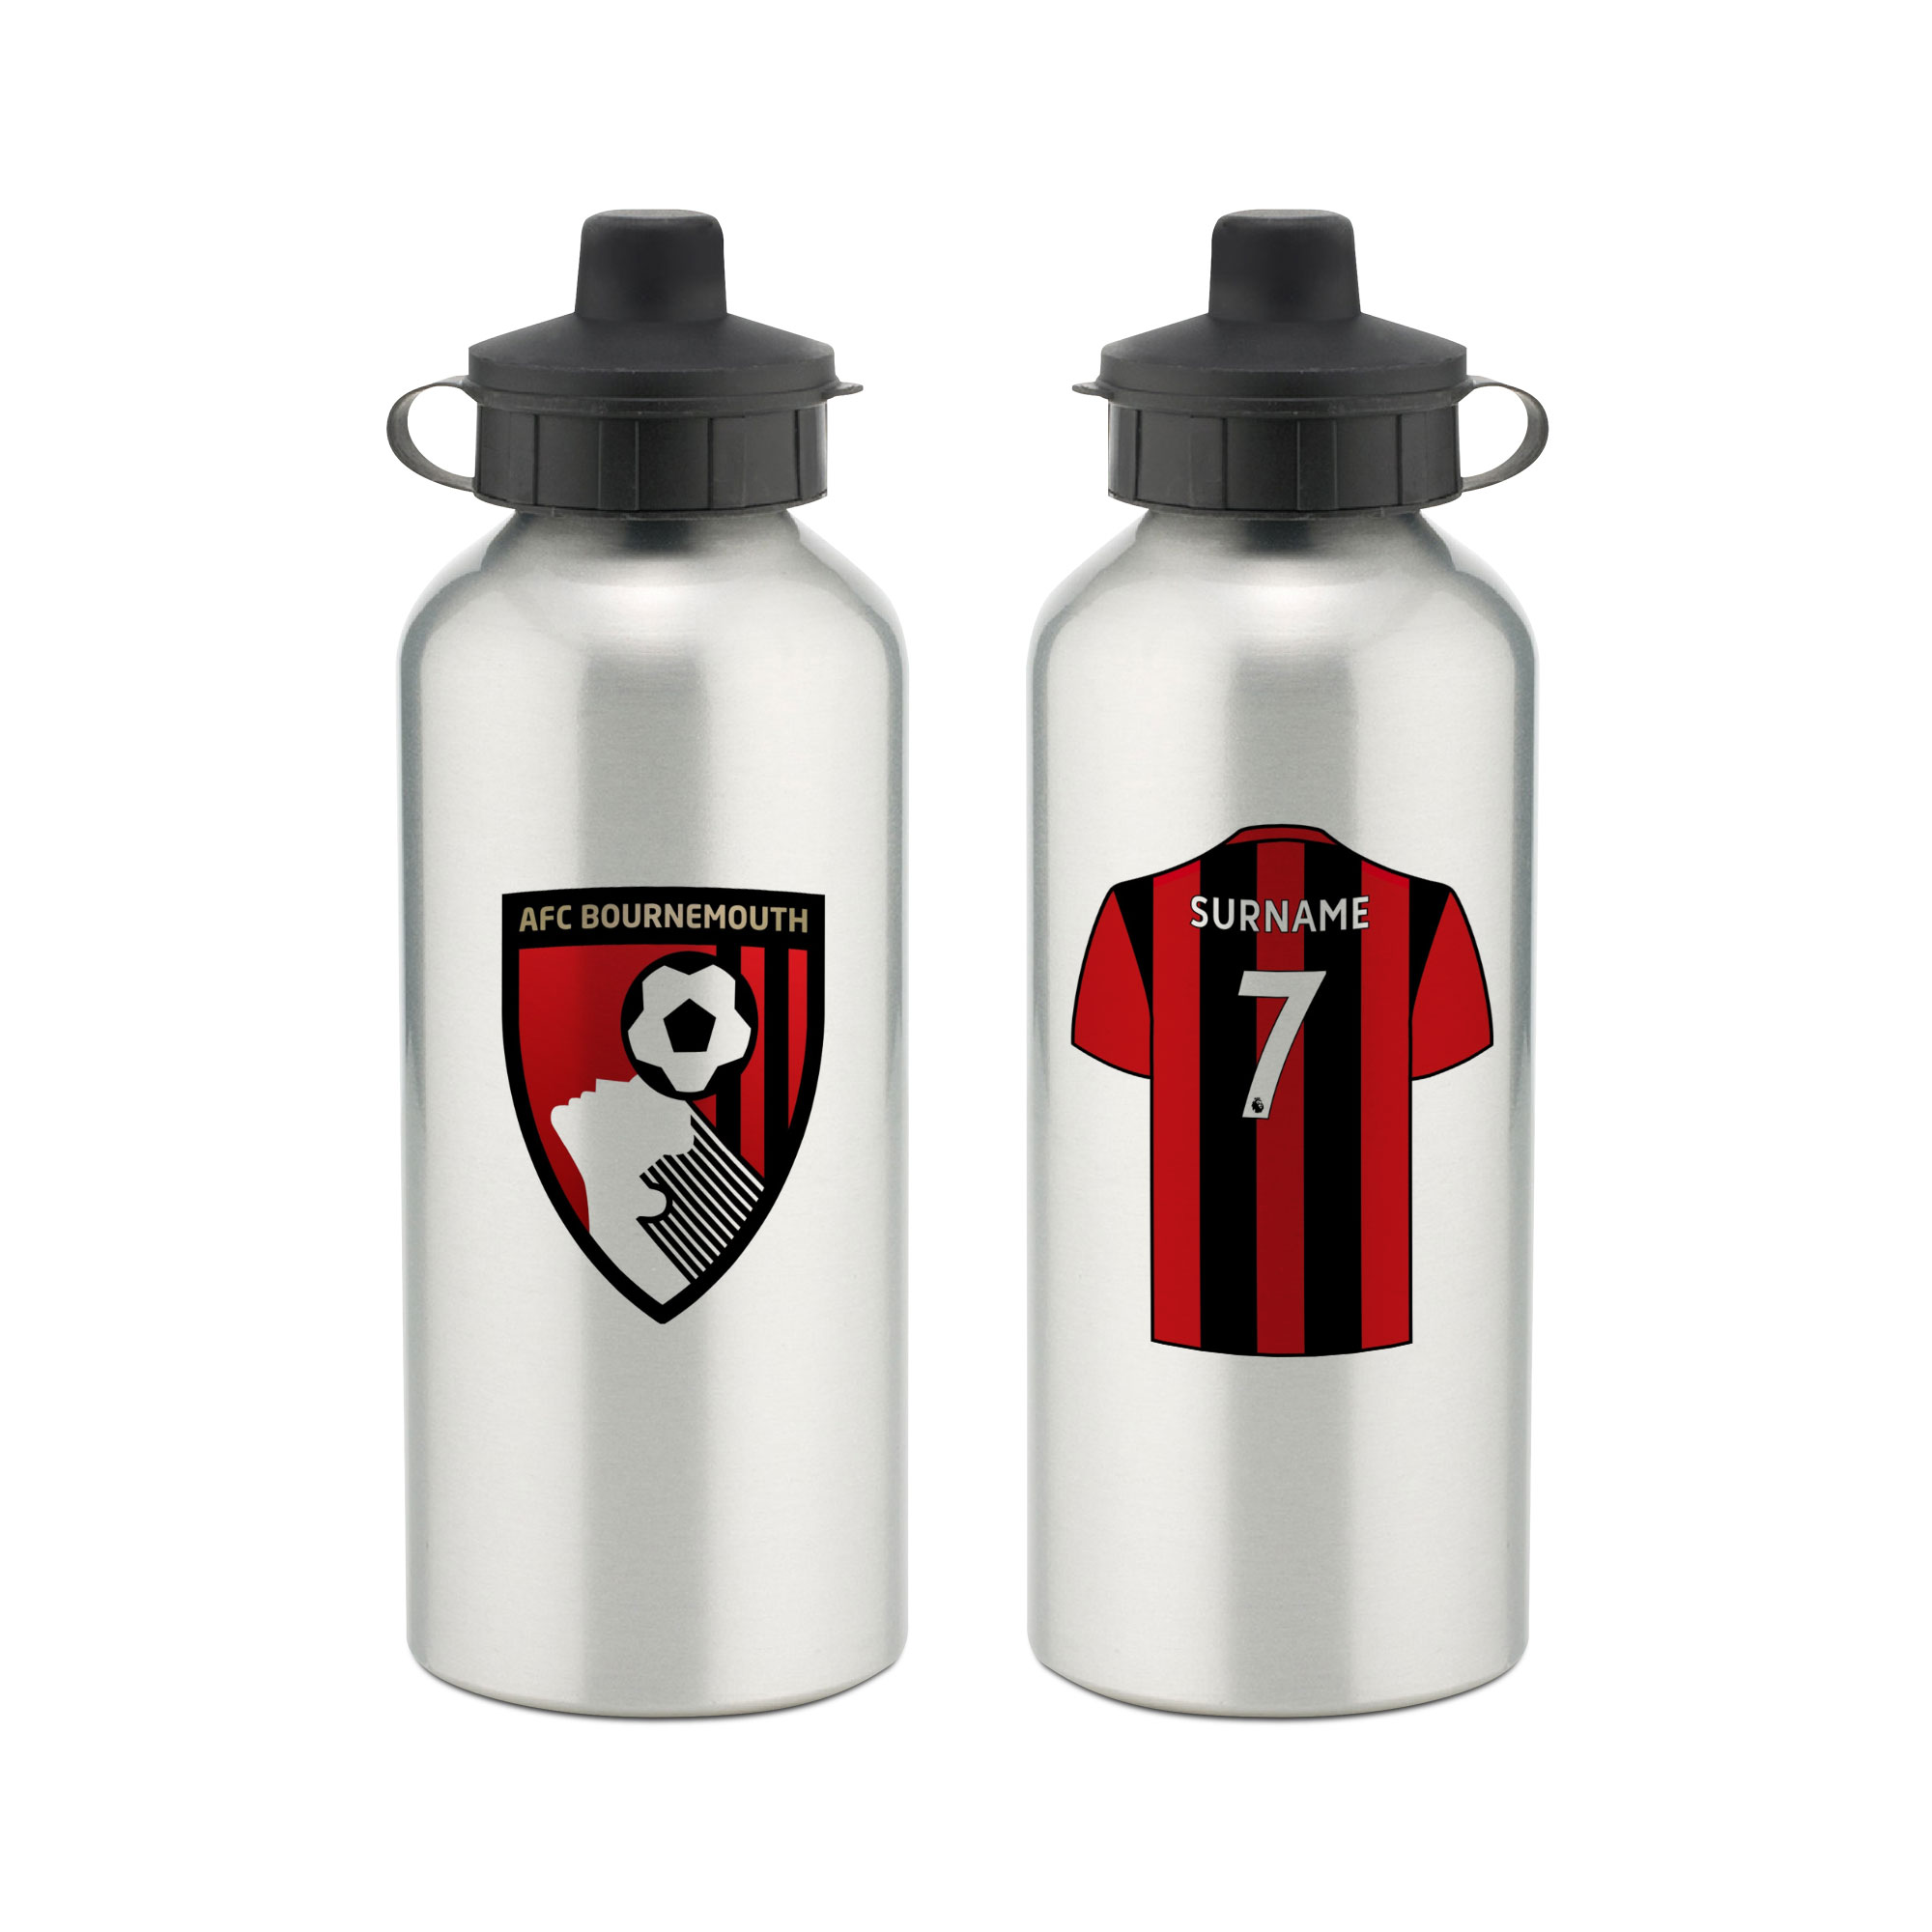 AFC Bournemouth Aluminium Water Bottle